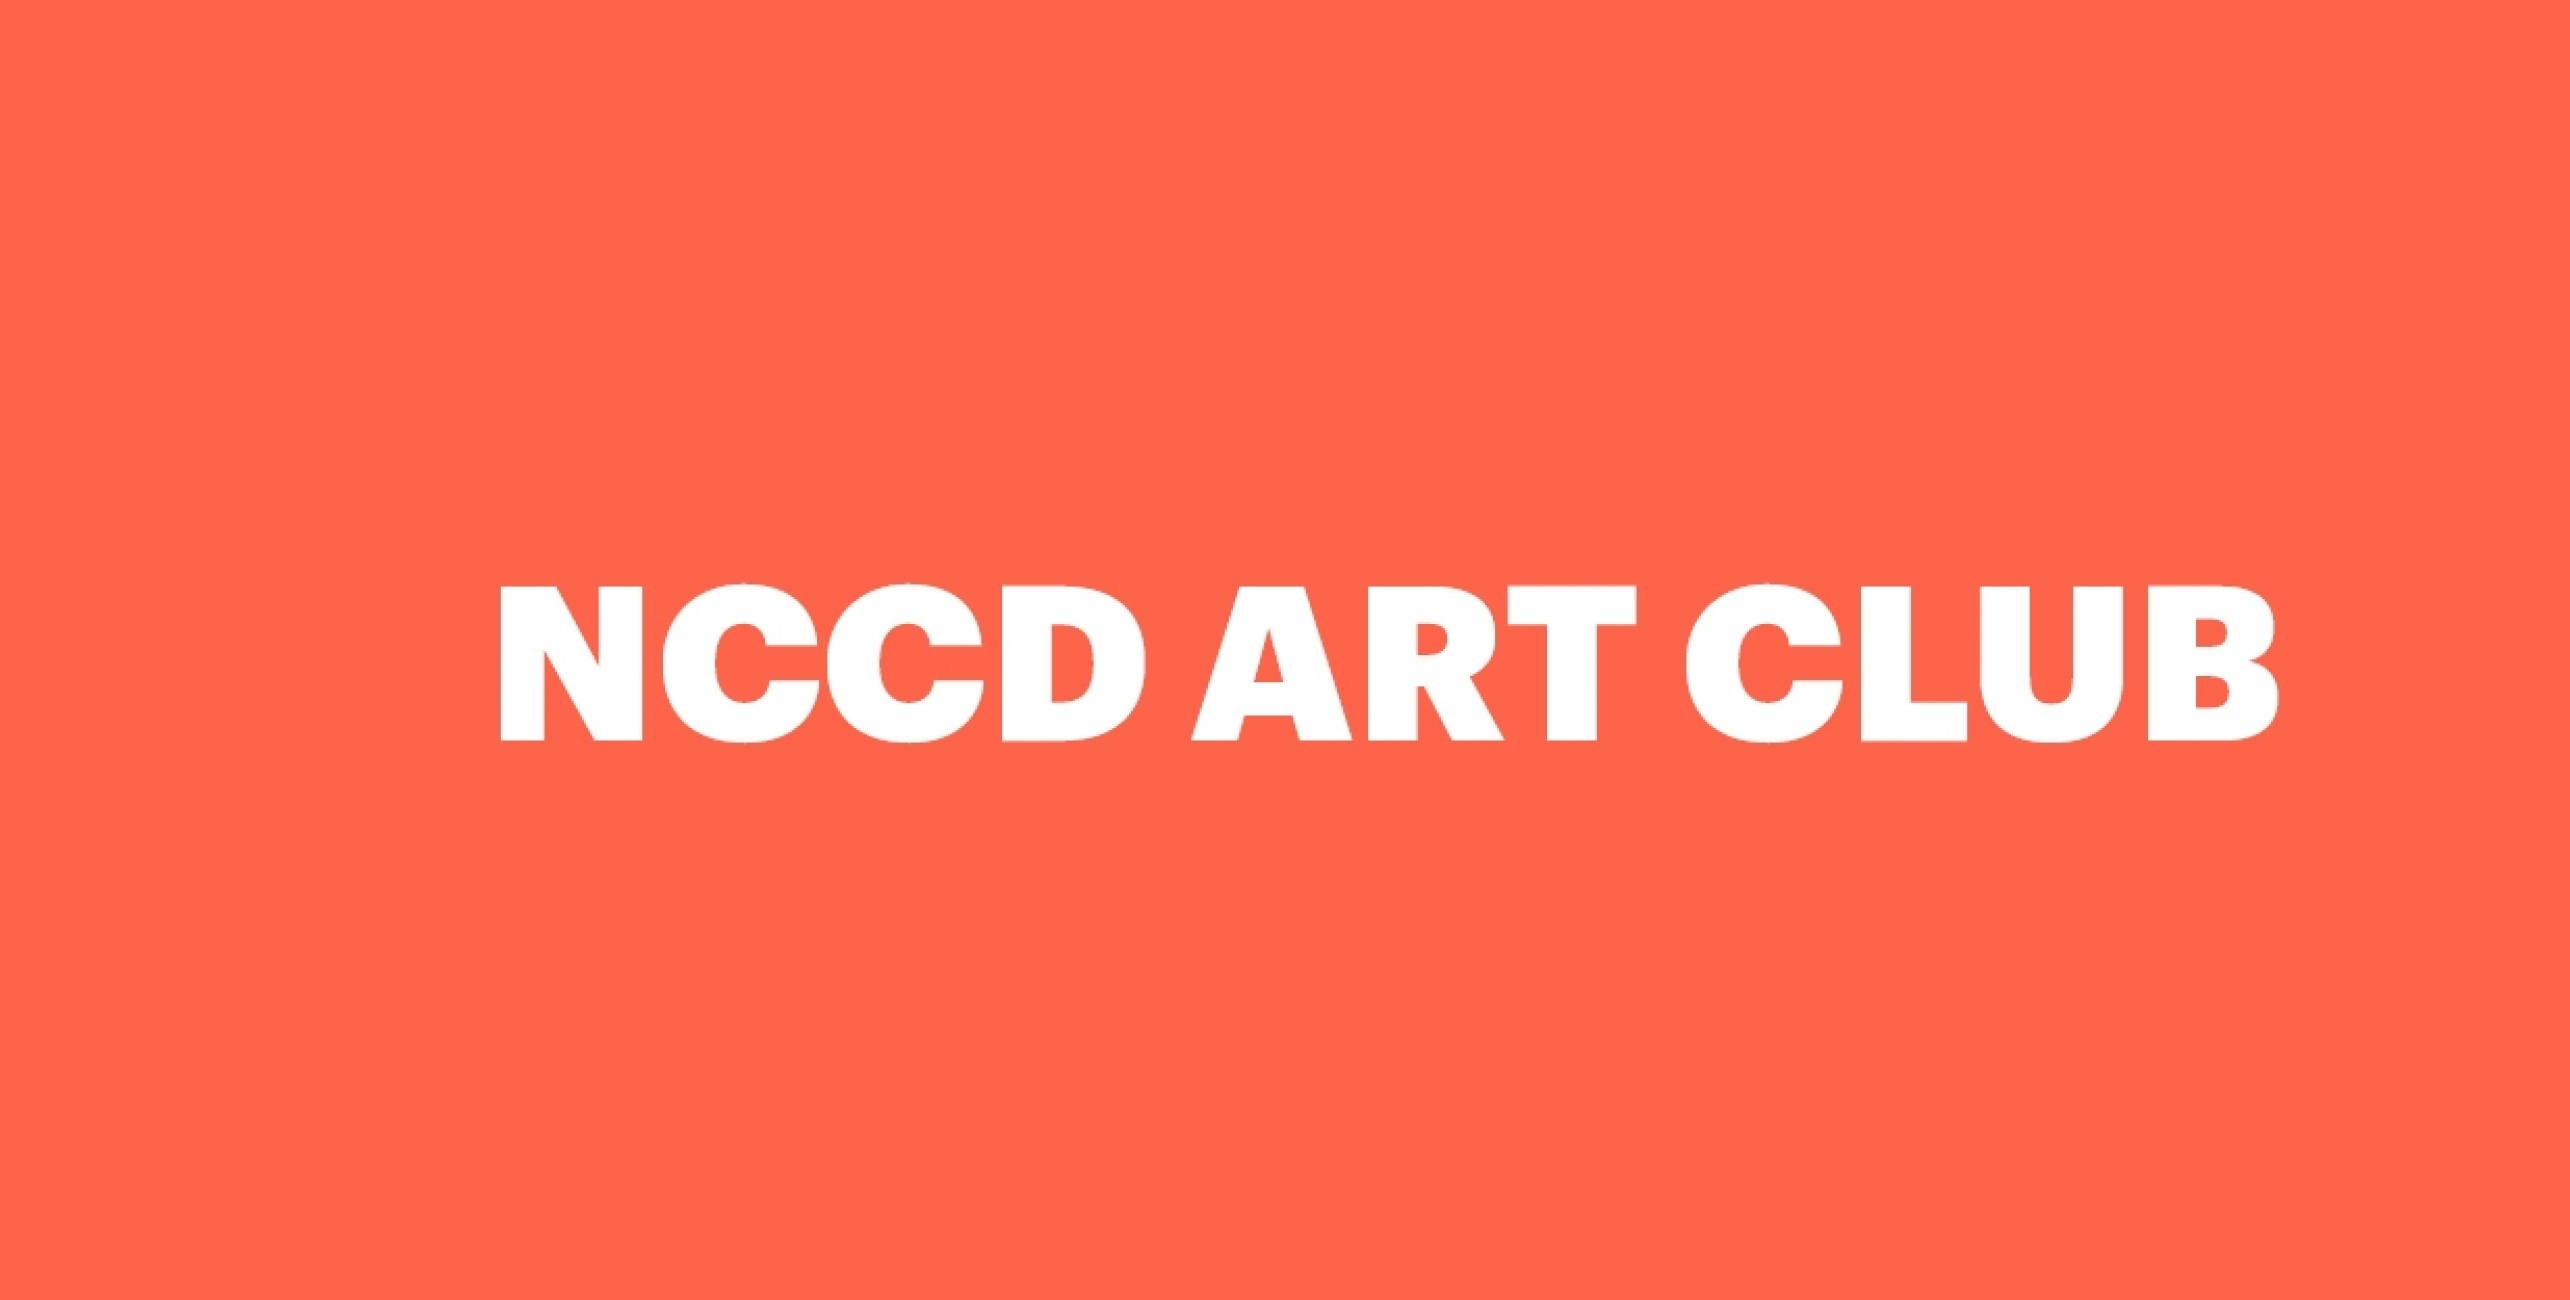 Open call to exhibit with NCCD